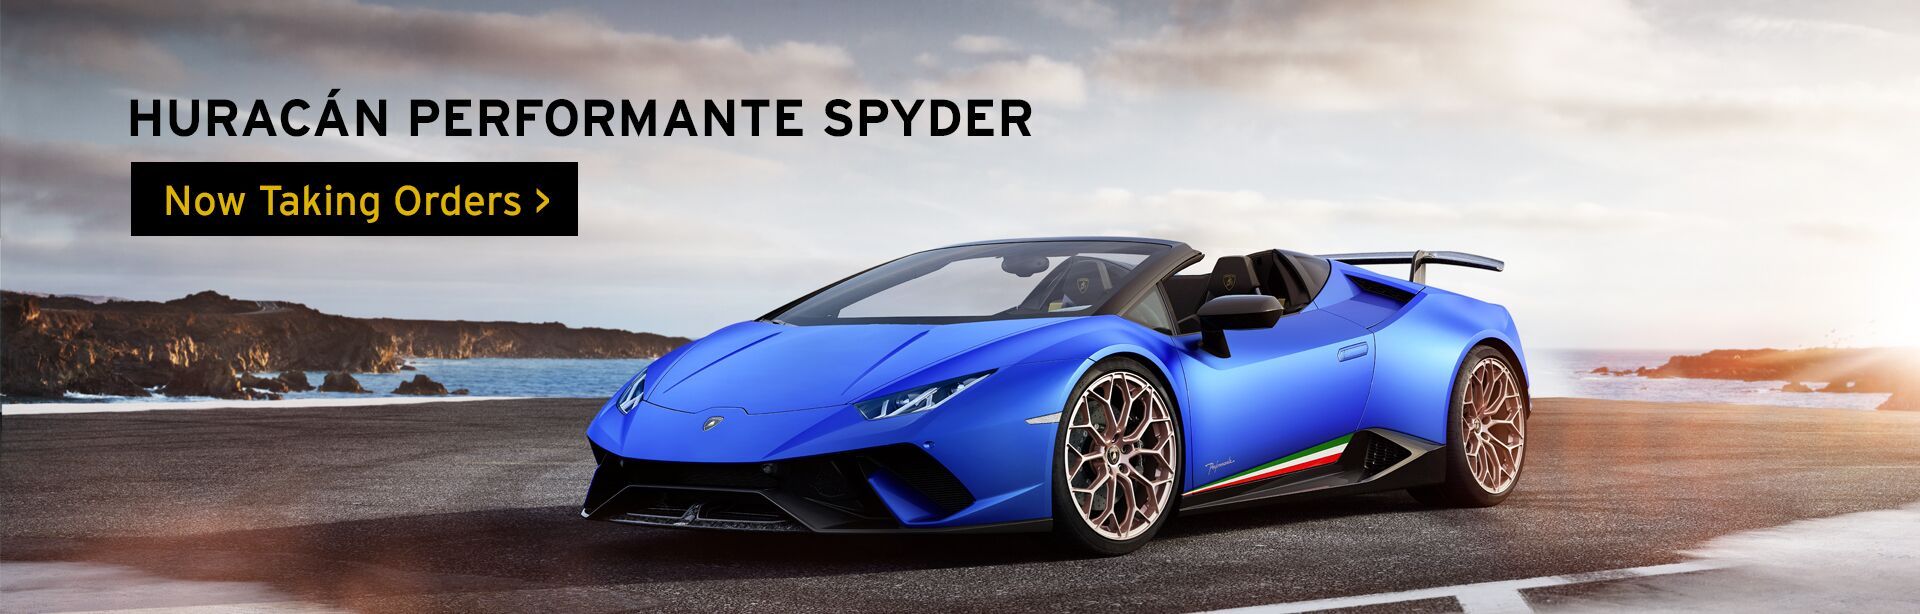 Huracan Performante Spyder - Now Taking Orders